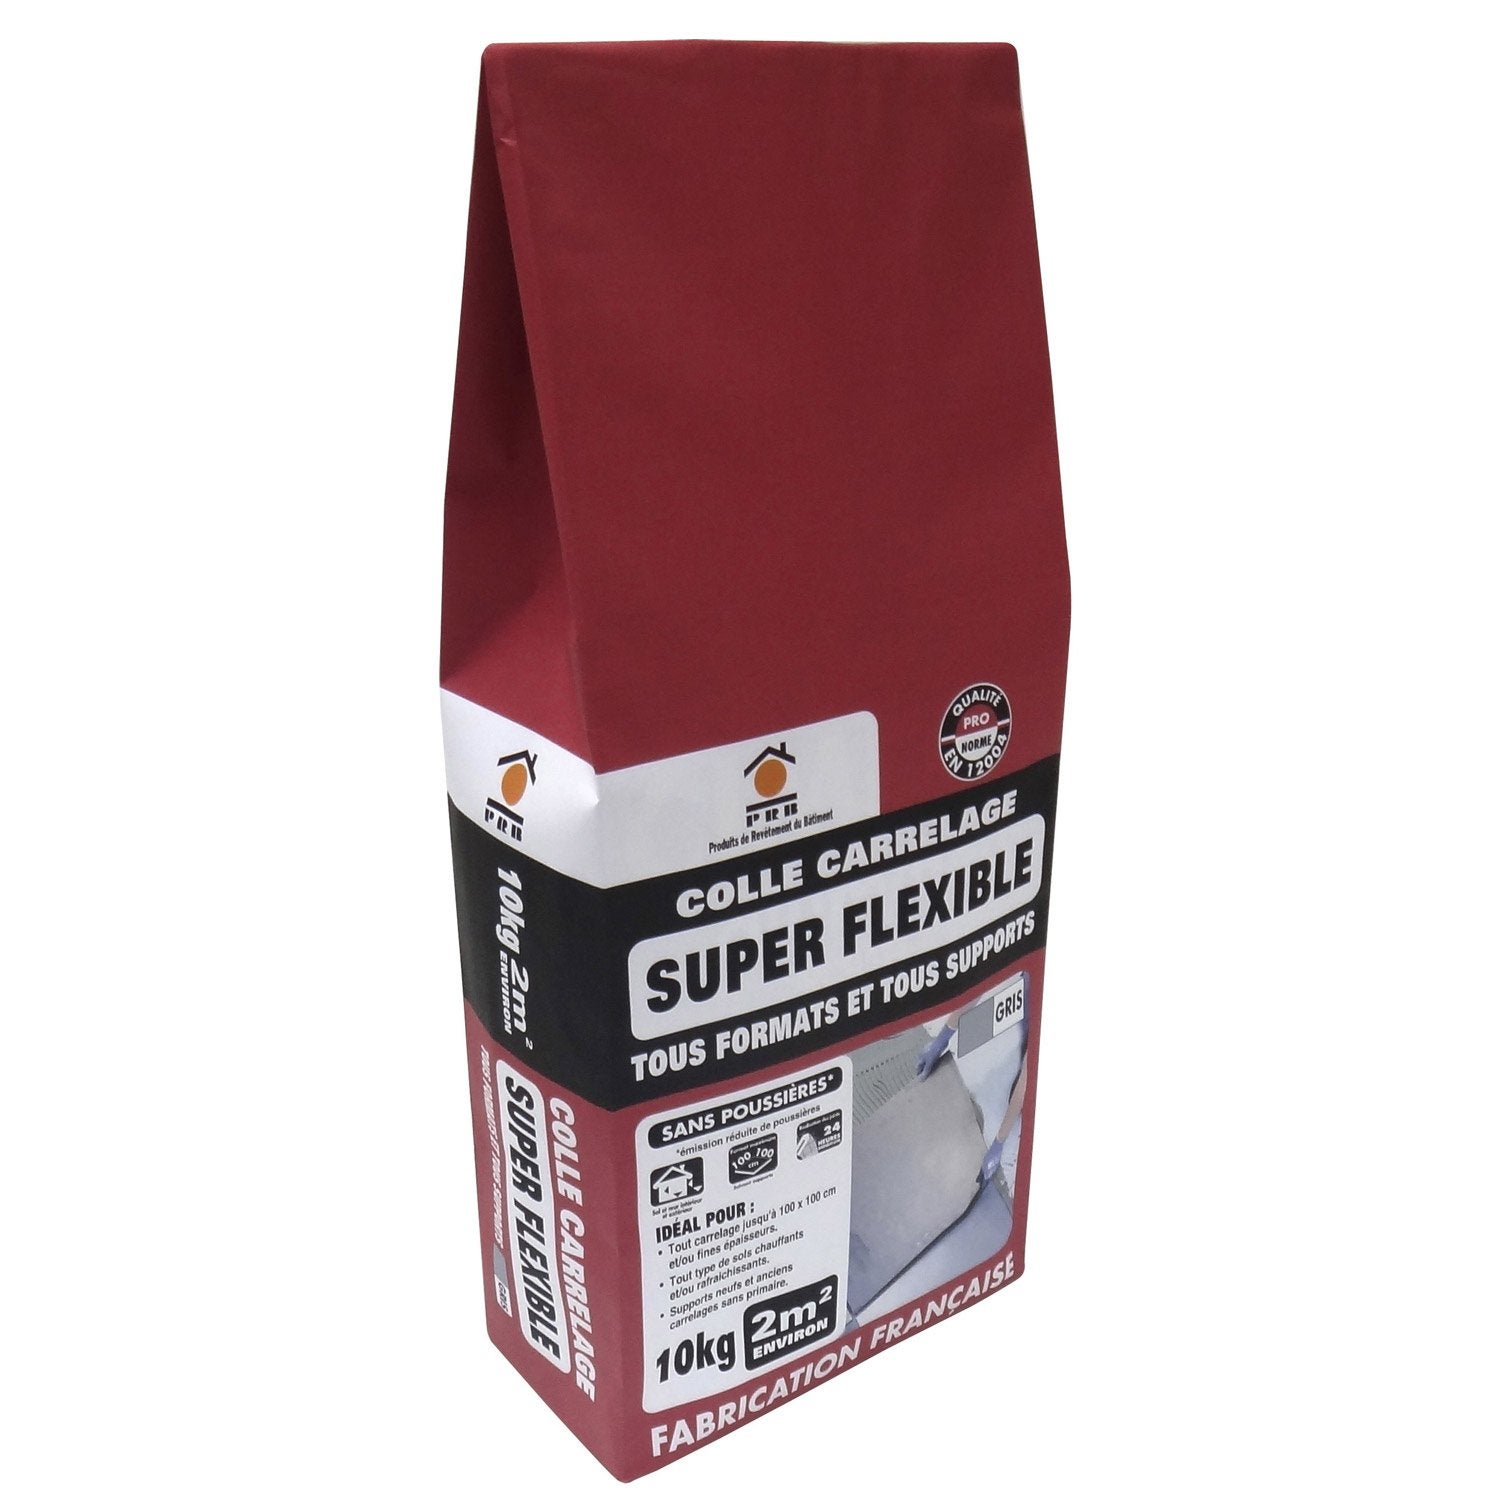 Mortier colle Superflexible pour carrelage mur et sol, 10 kg, gris